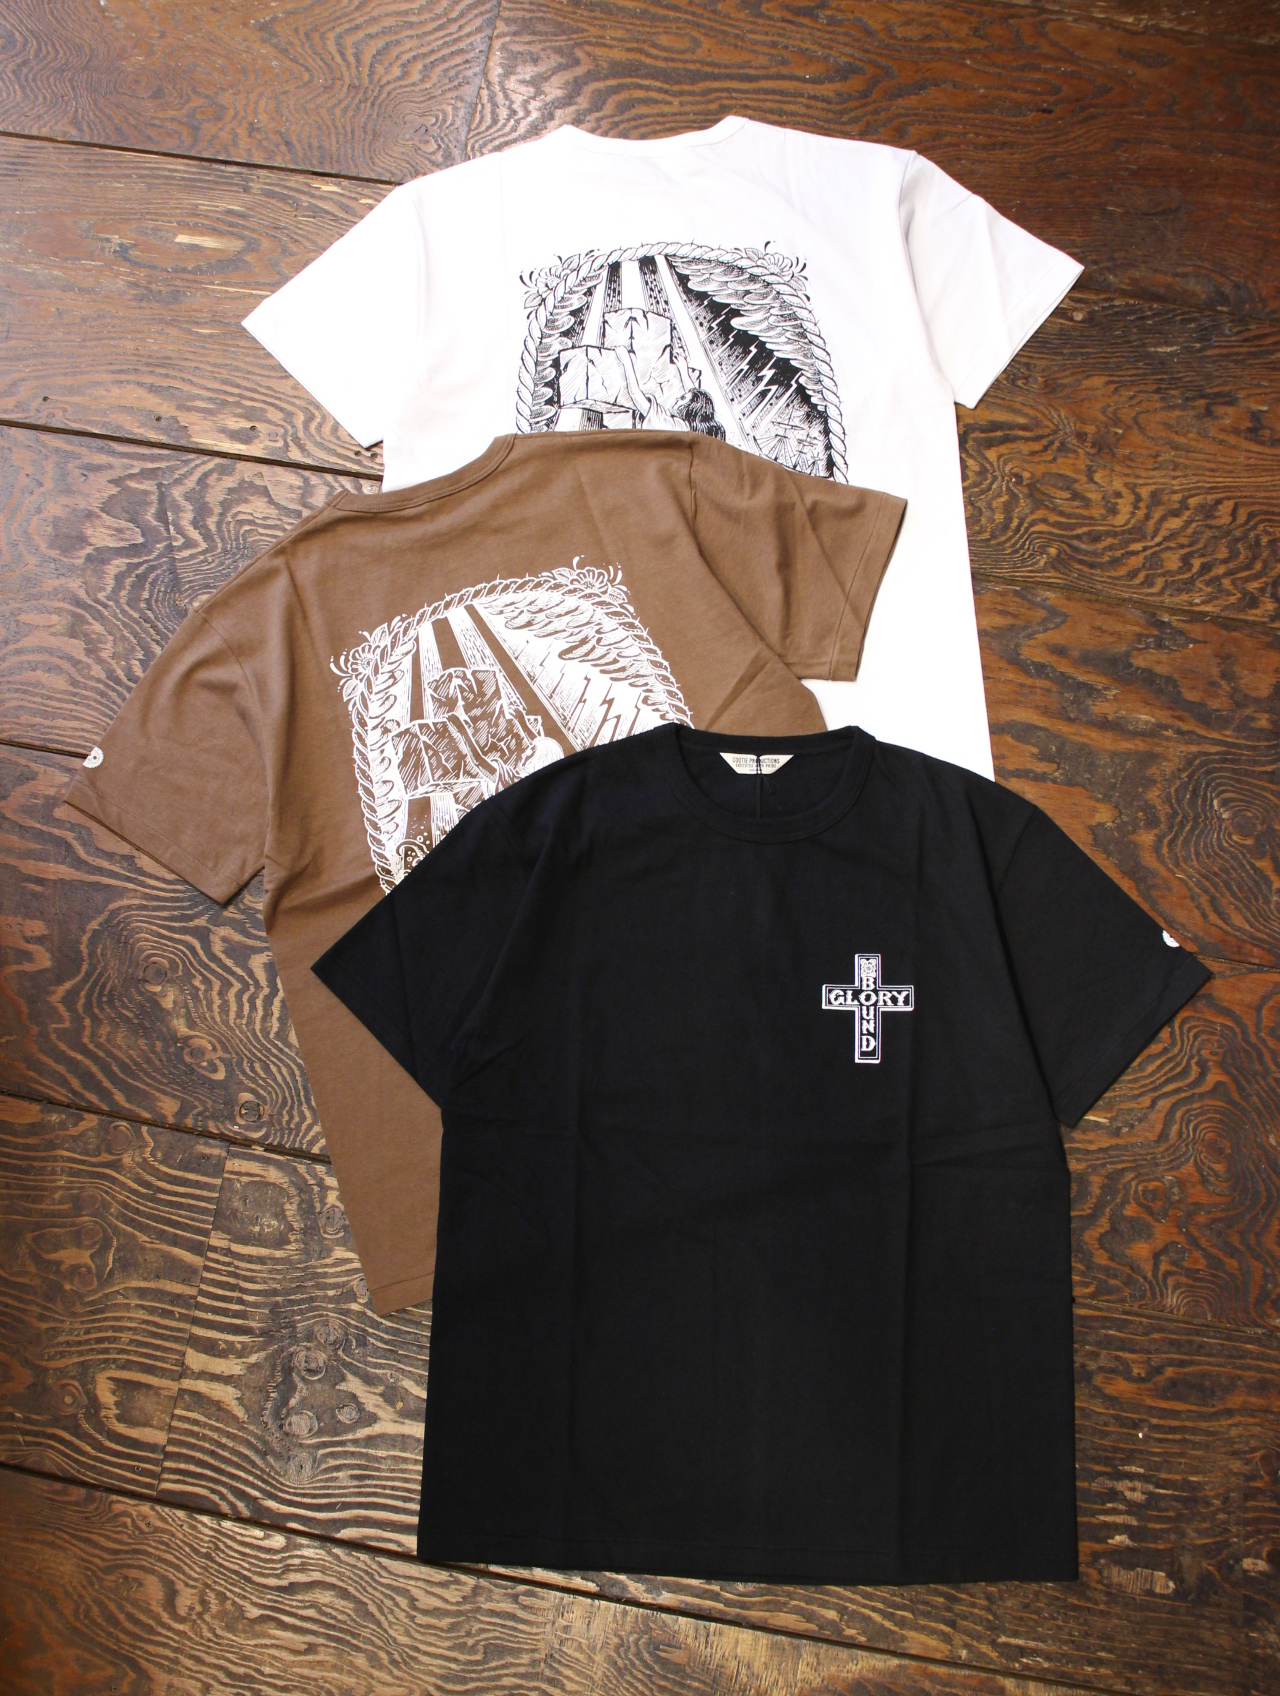 COOTIE × MAGICAL DESIGN 「Print S/S Tee (ROCK OF AGES)」 プリントティーシャツ